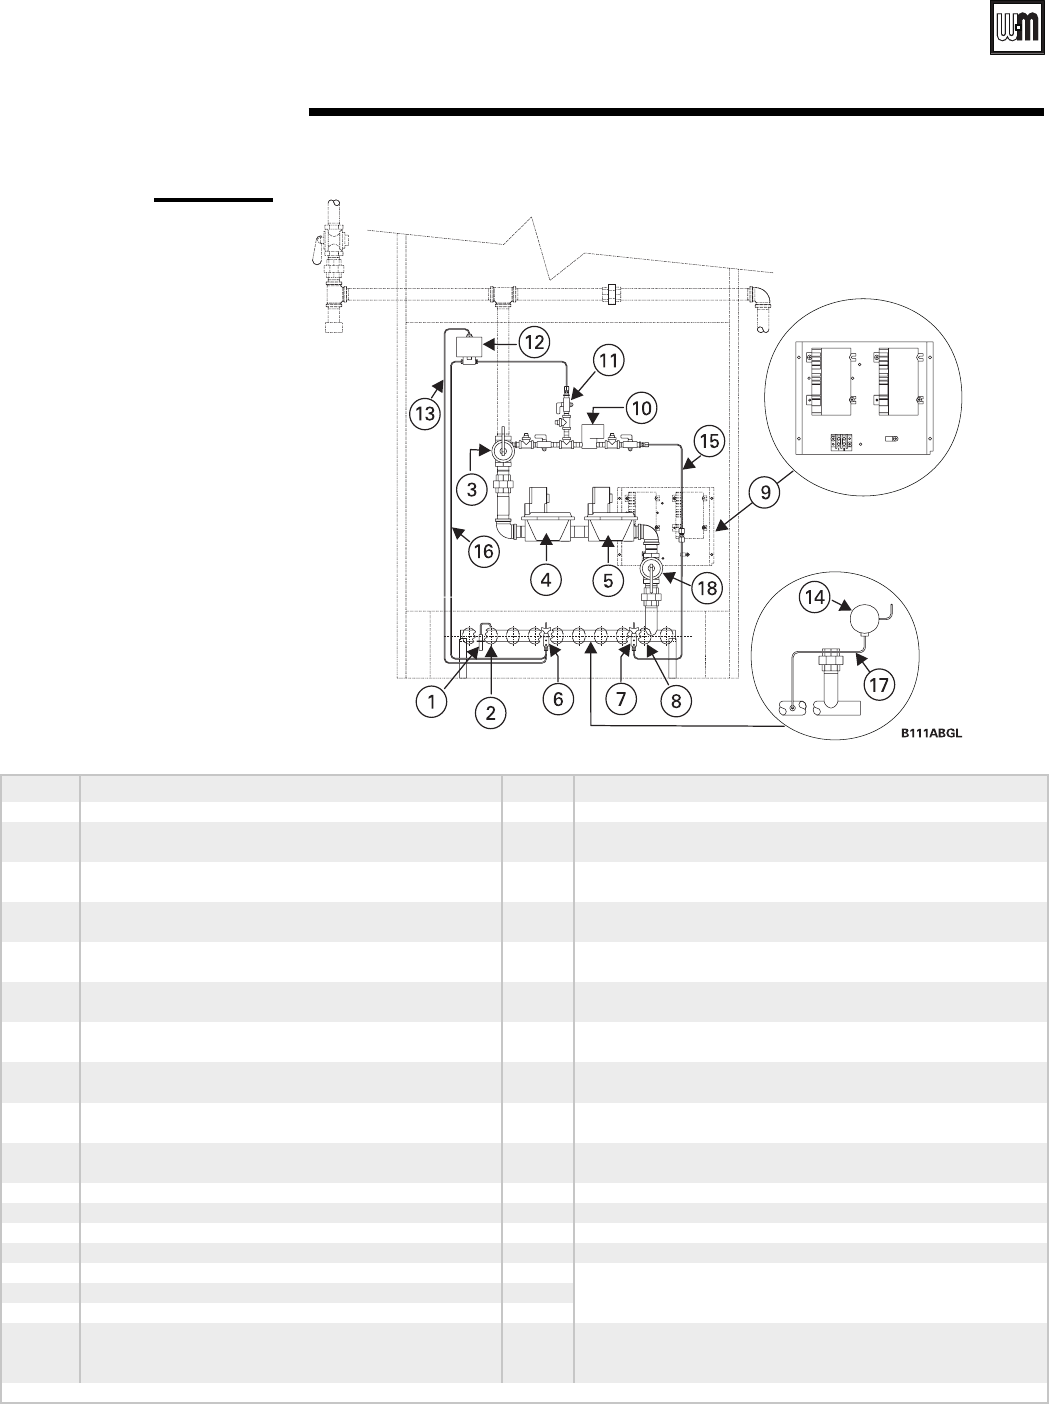 Lgb Train Wiring Diagrams Trusted Weil Mclain Diagram Heat Pump Thermostat Wire In Floor Heating Installation